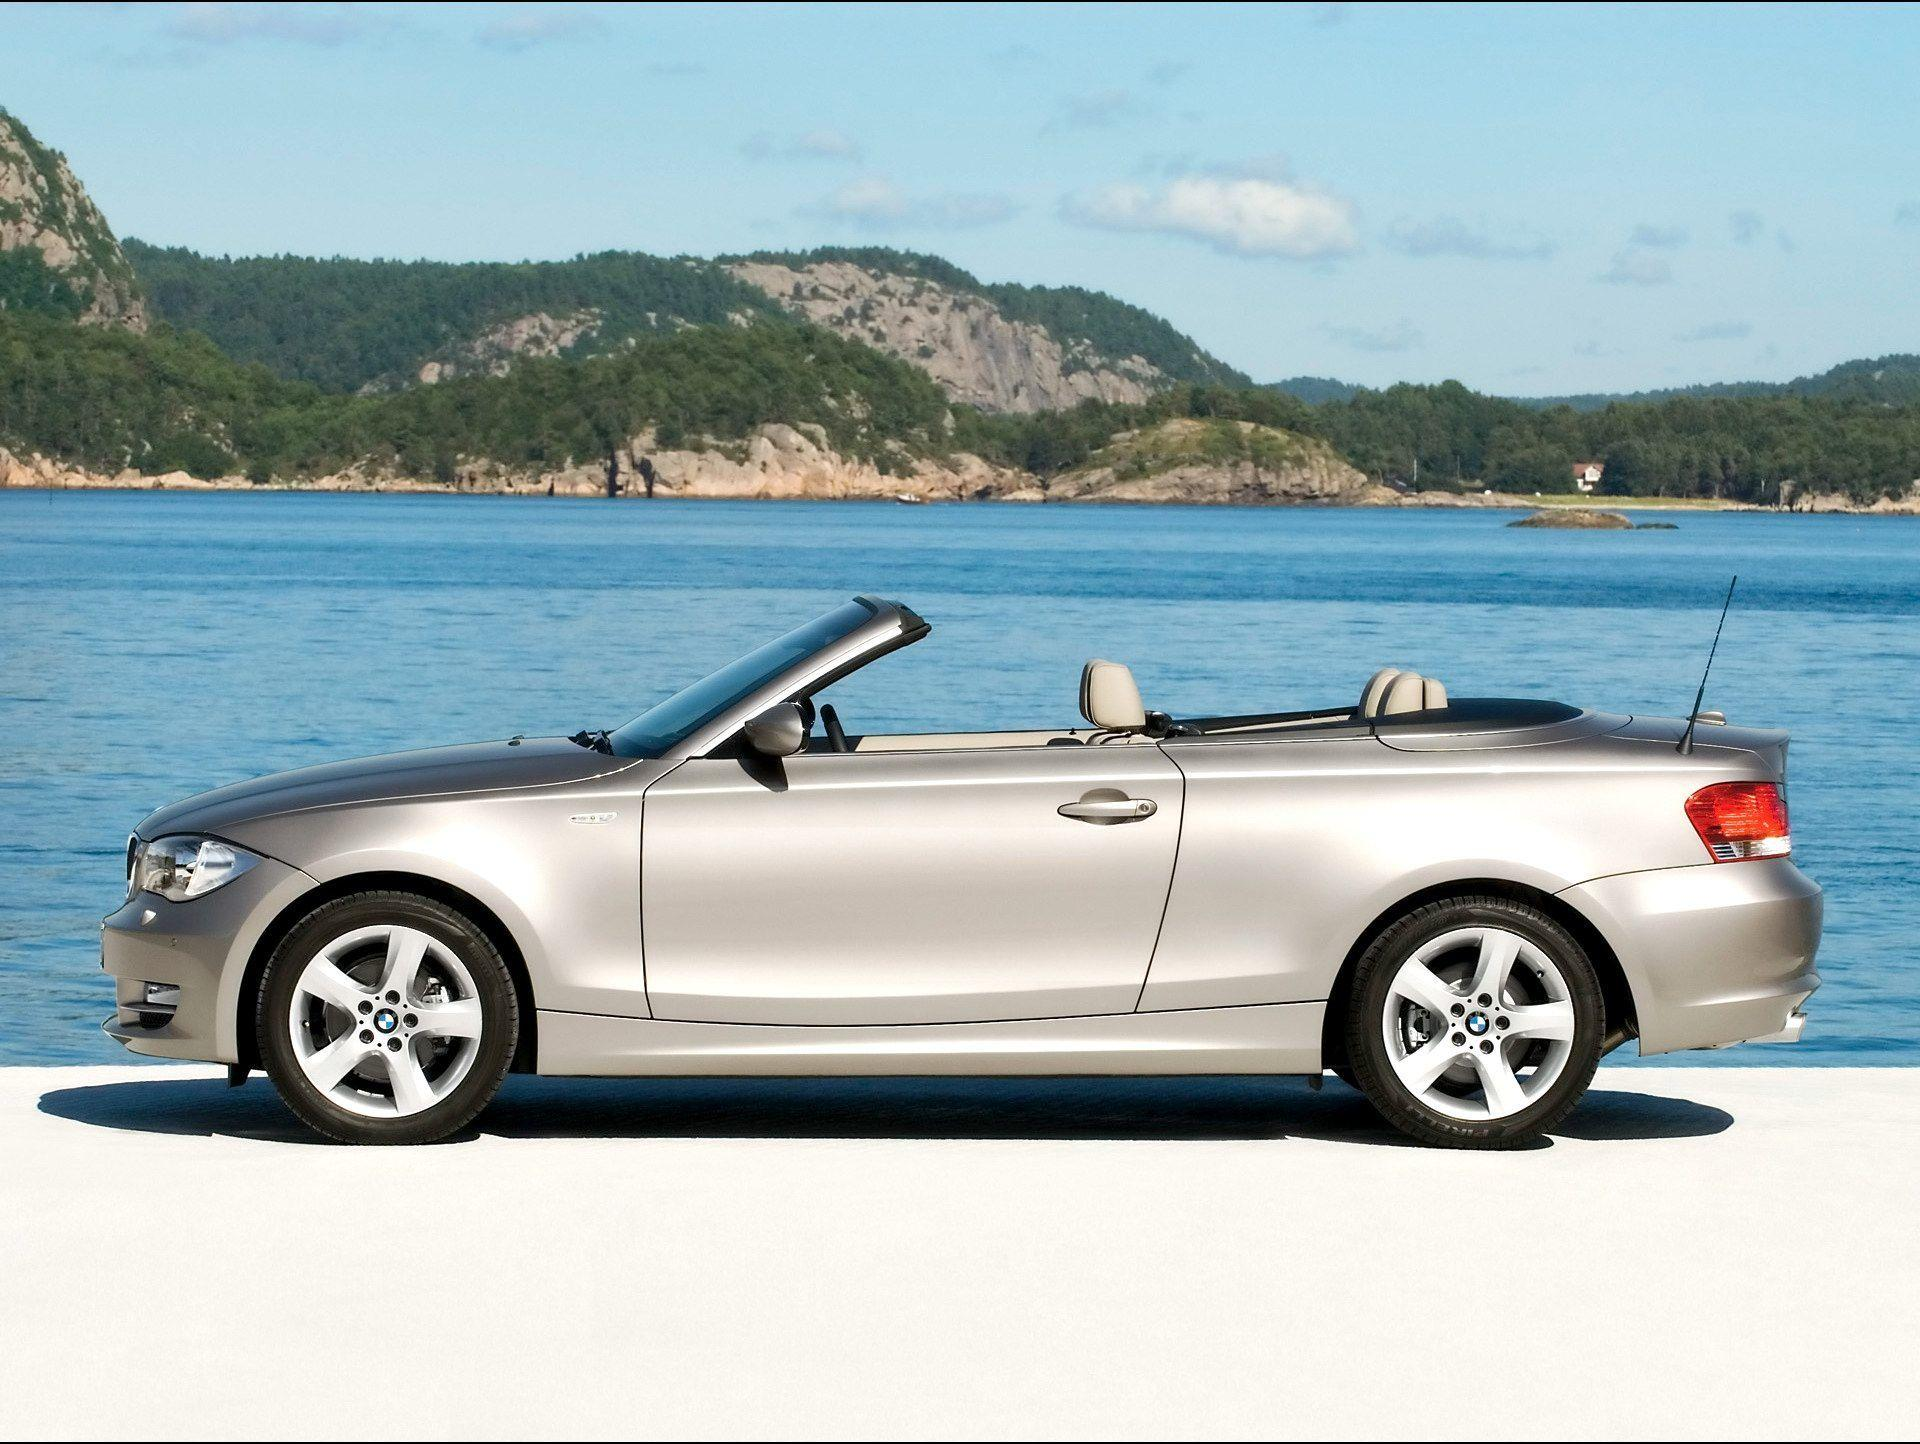 2008 BMW 1 Series Convertible Wallpaper 16 - 1920x1440